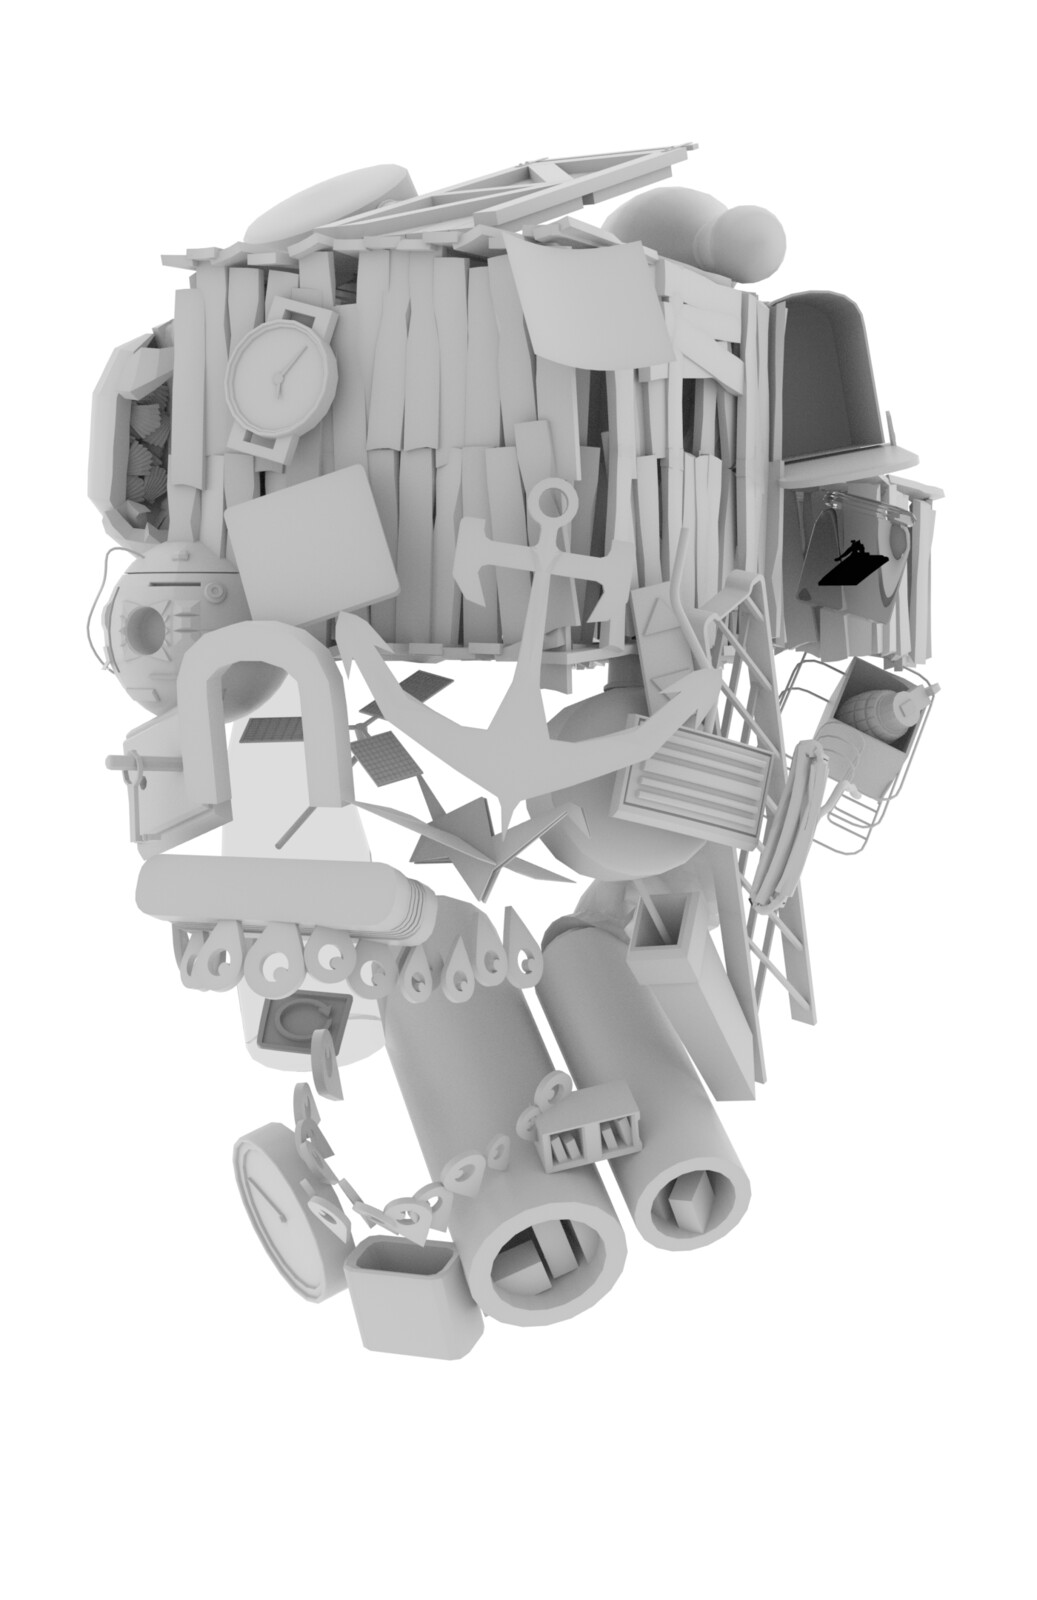 3D base. Each component represents one of the forty chapters in the book, and started with 3D modeling all of the non-organic elements. This allowed me to move pieces around easily, twisting and turning them, arranging them into the skull shape as needed.